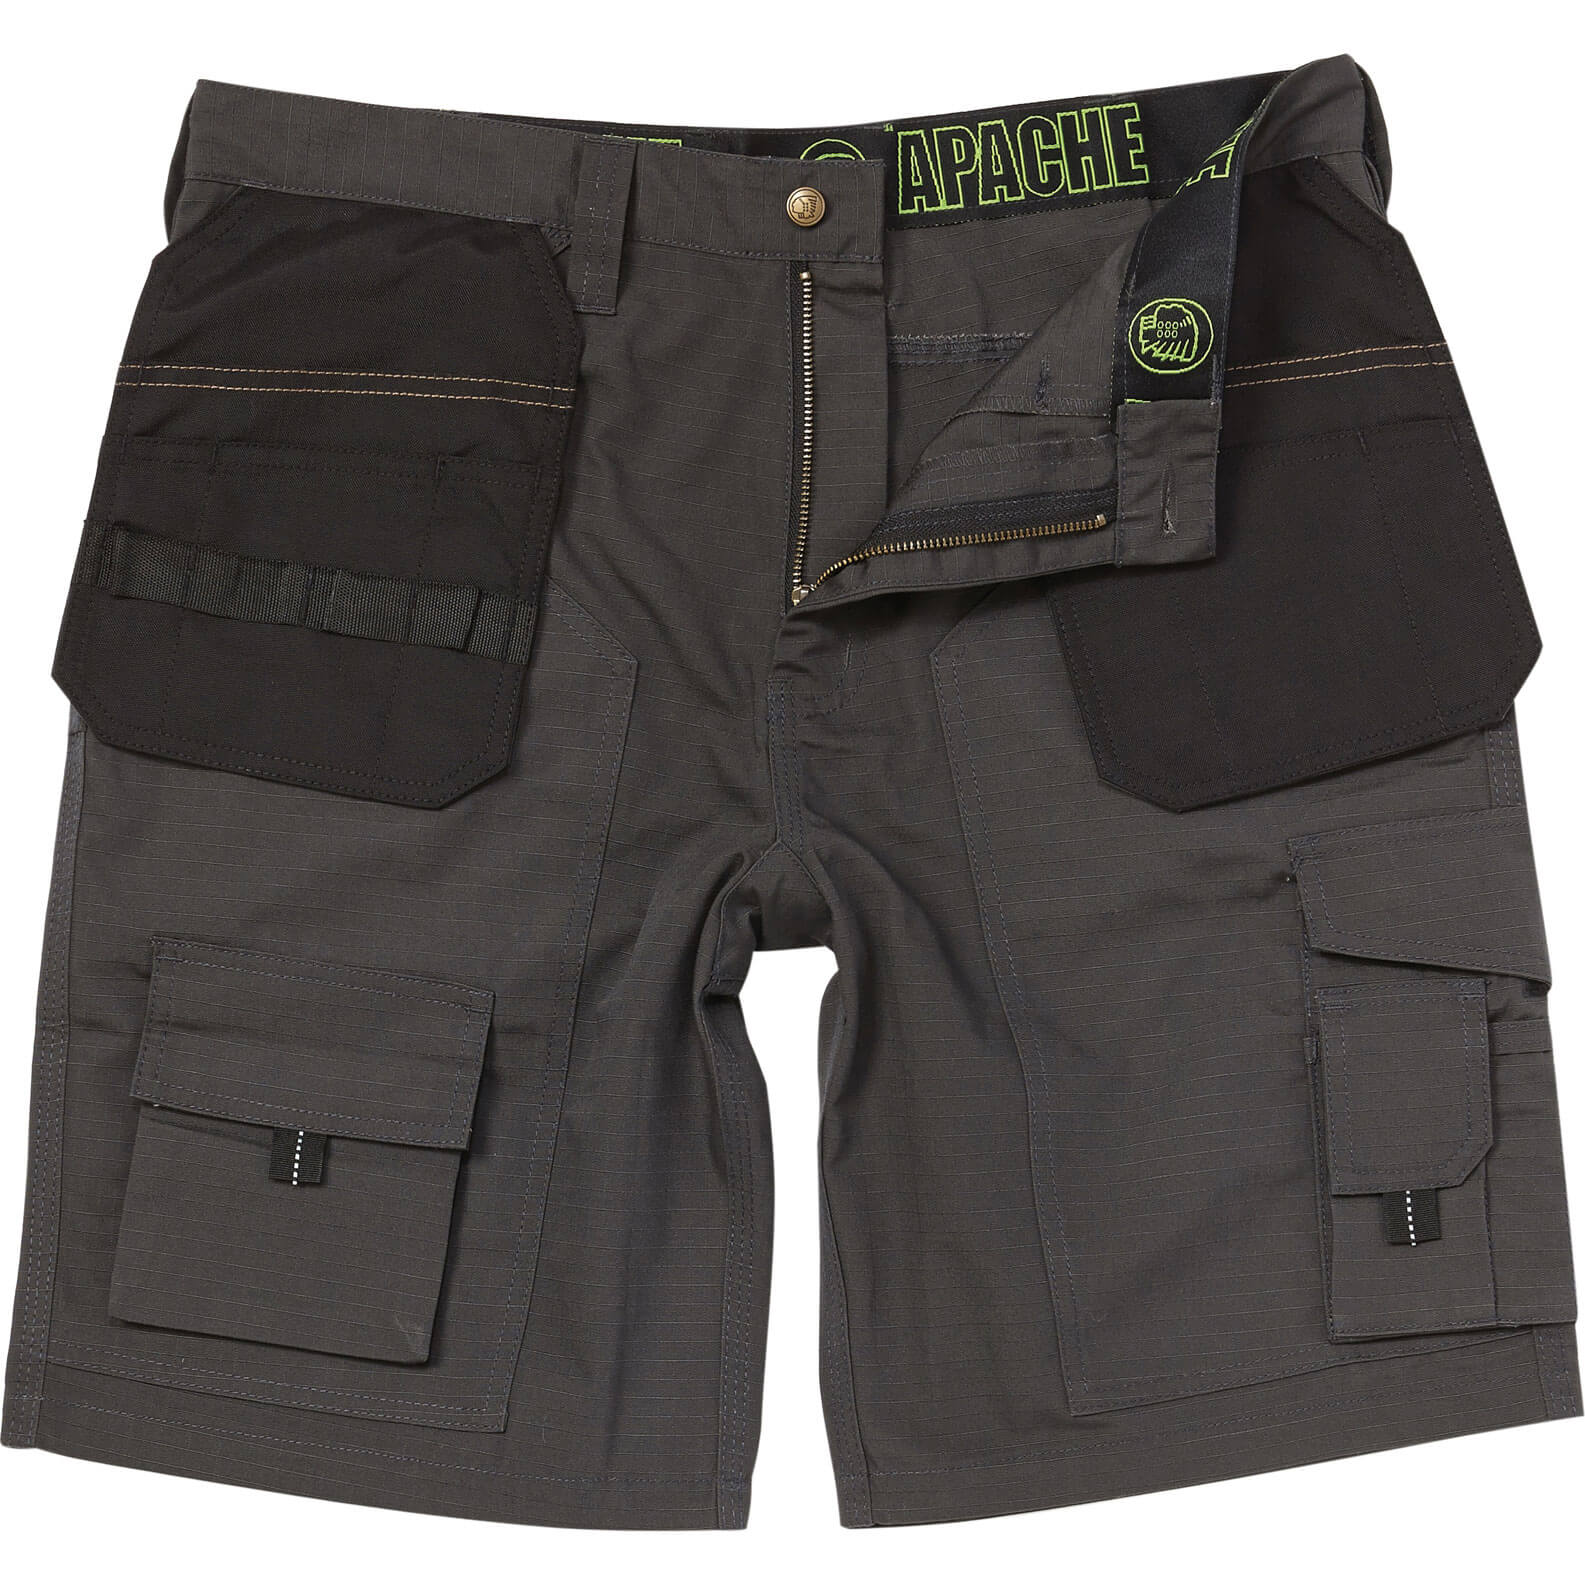 Image of Apache Rip Stop Holster Light Weight Work Shorts Grey 30""